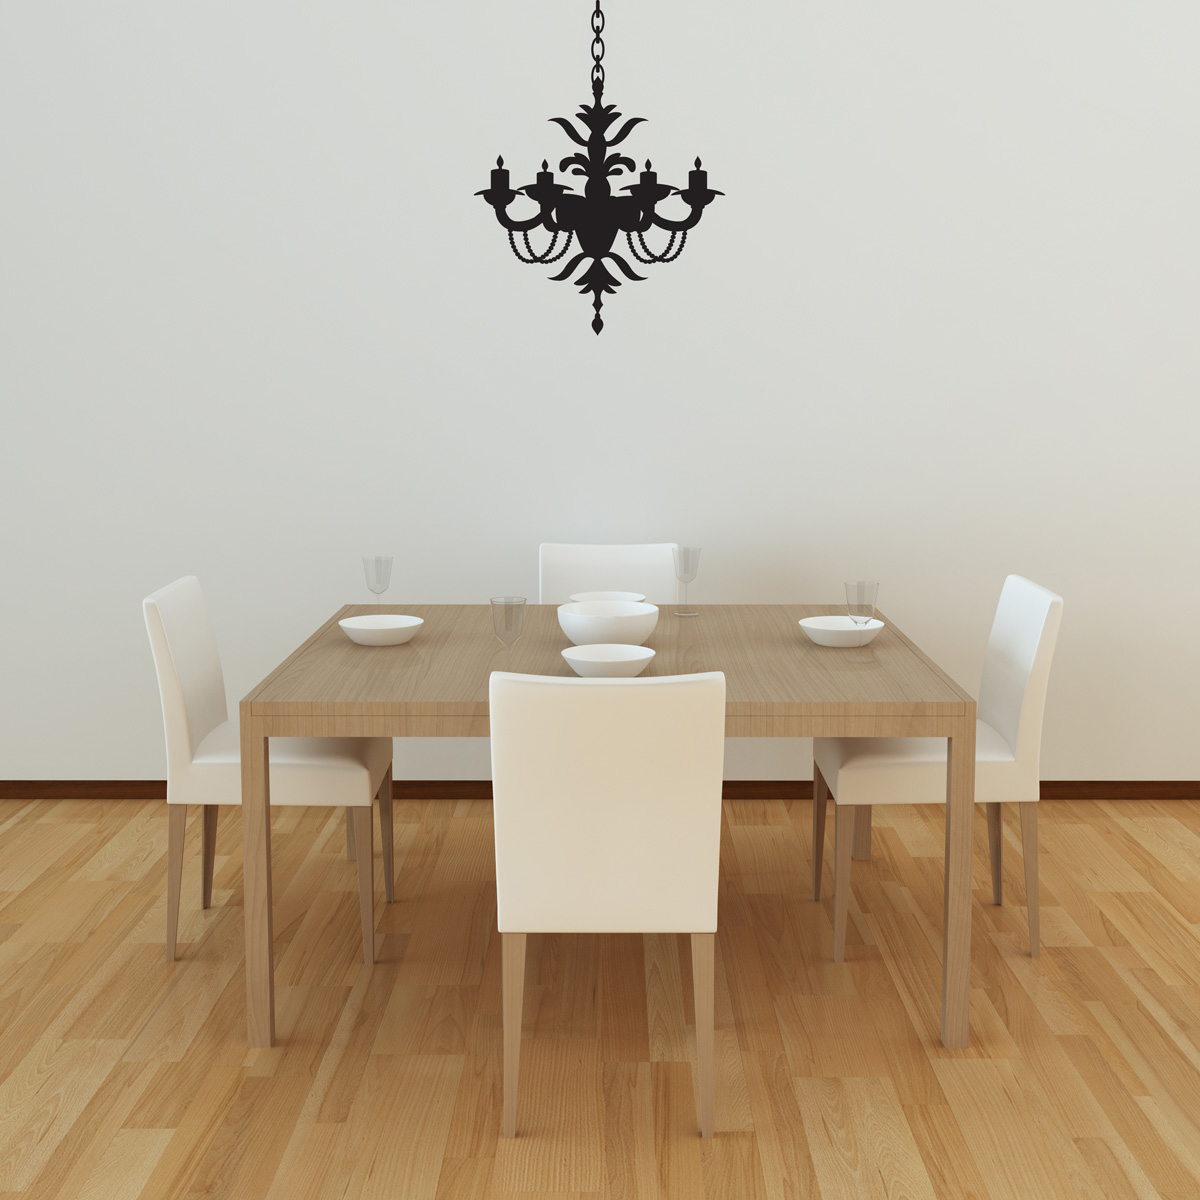 Chandelier wall decal style 1 arubaitofo Gallery